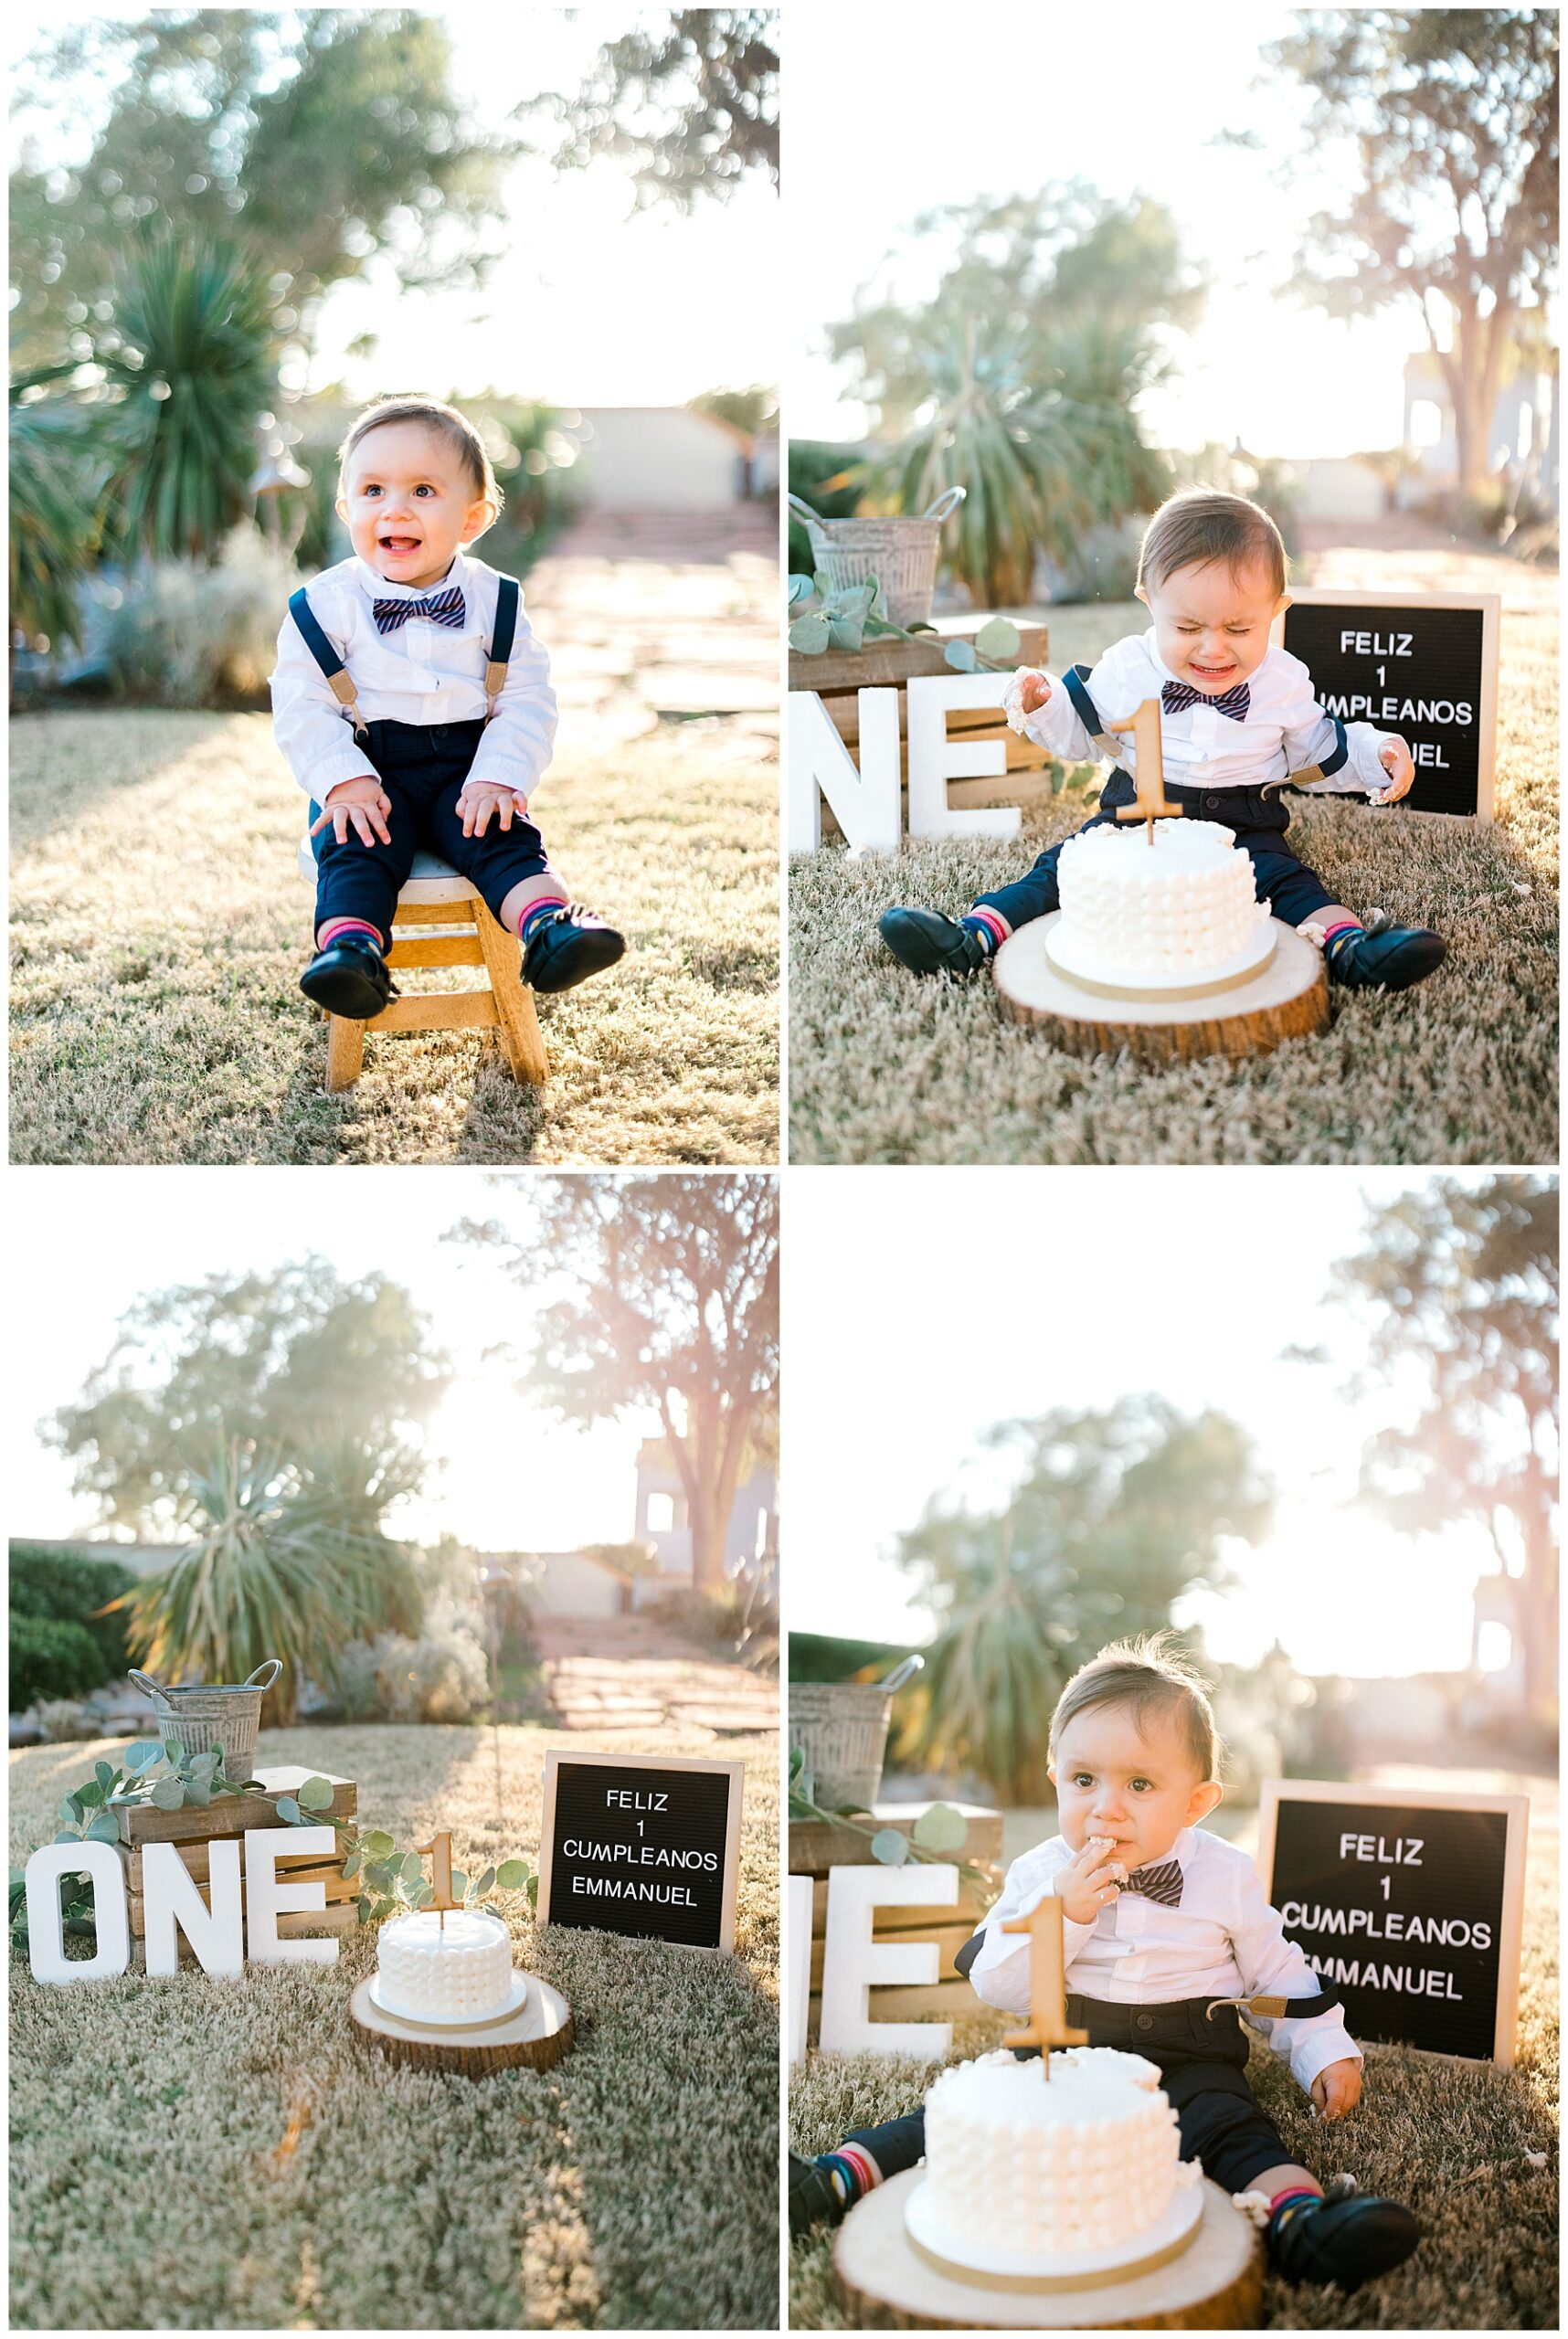 el paso cake smash, rustic cake smash session, boy cake smash, el paso birthday photographer, outdoor cake smash, el paso family photography